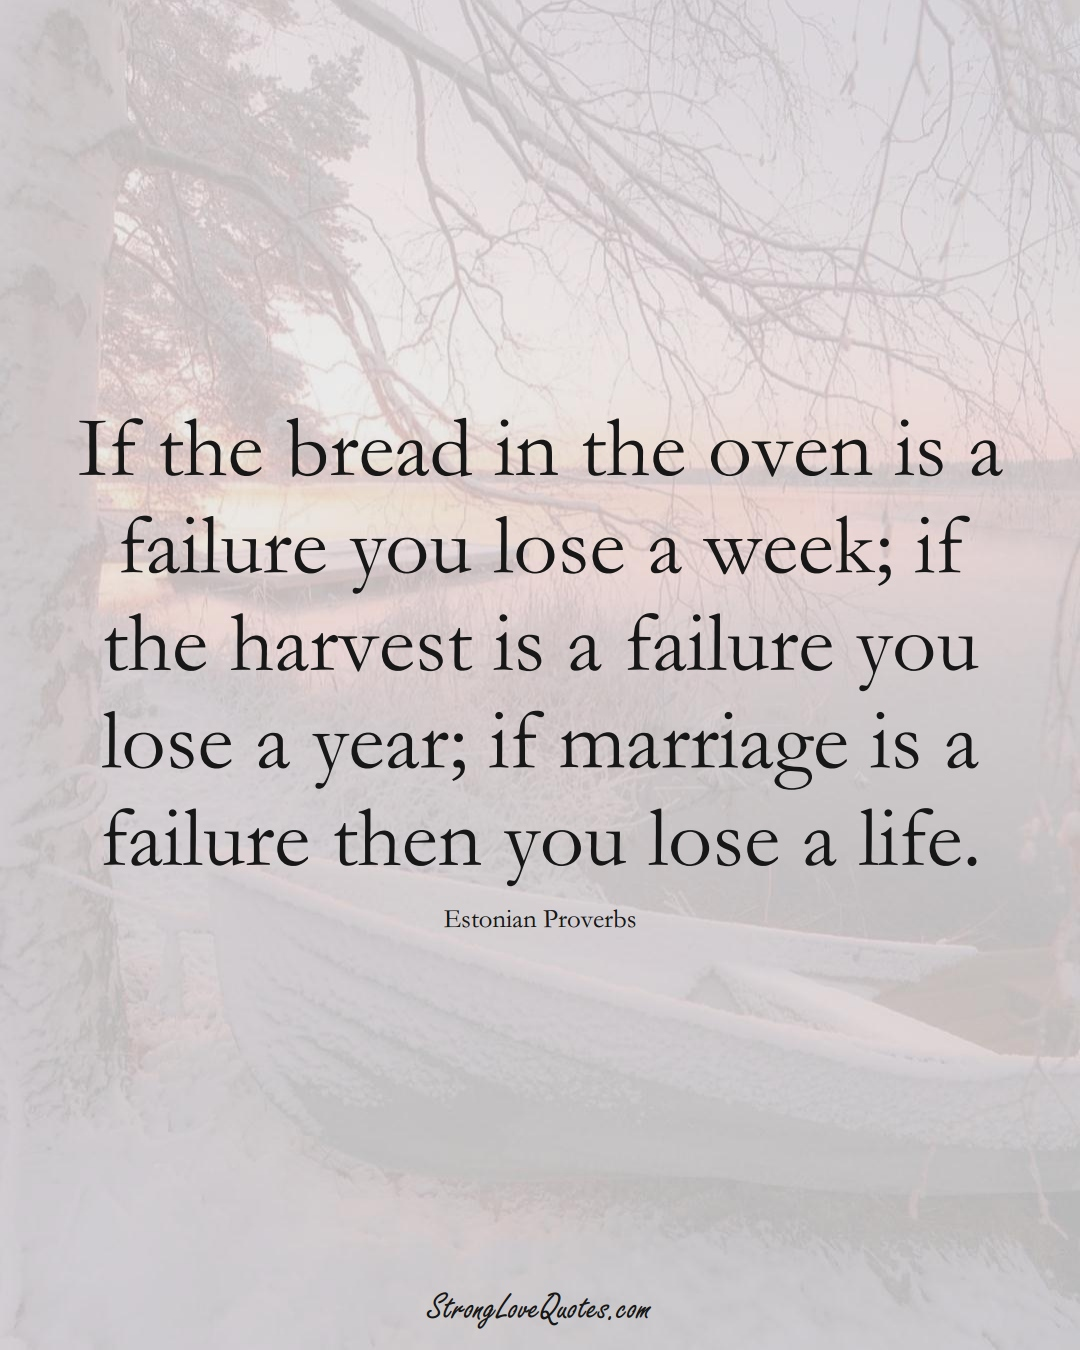 If the bread in the oven is a failure you lose a week; if the harvest is a failure you lose a year; if marriage is a failure then you lose a life. (Estonian Sayings);  #EuropeanSayings